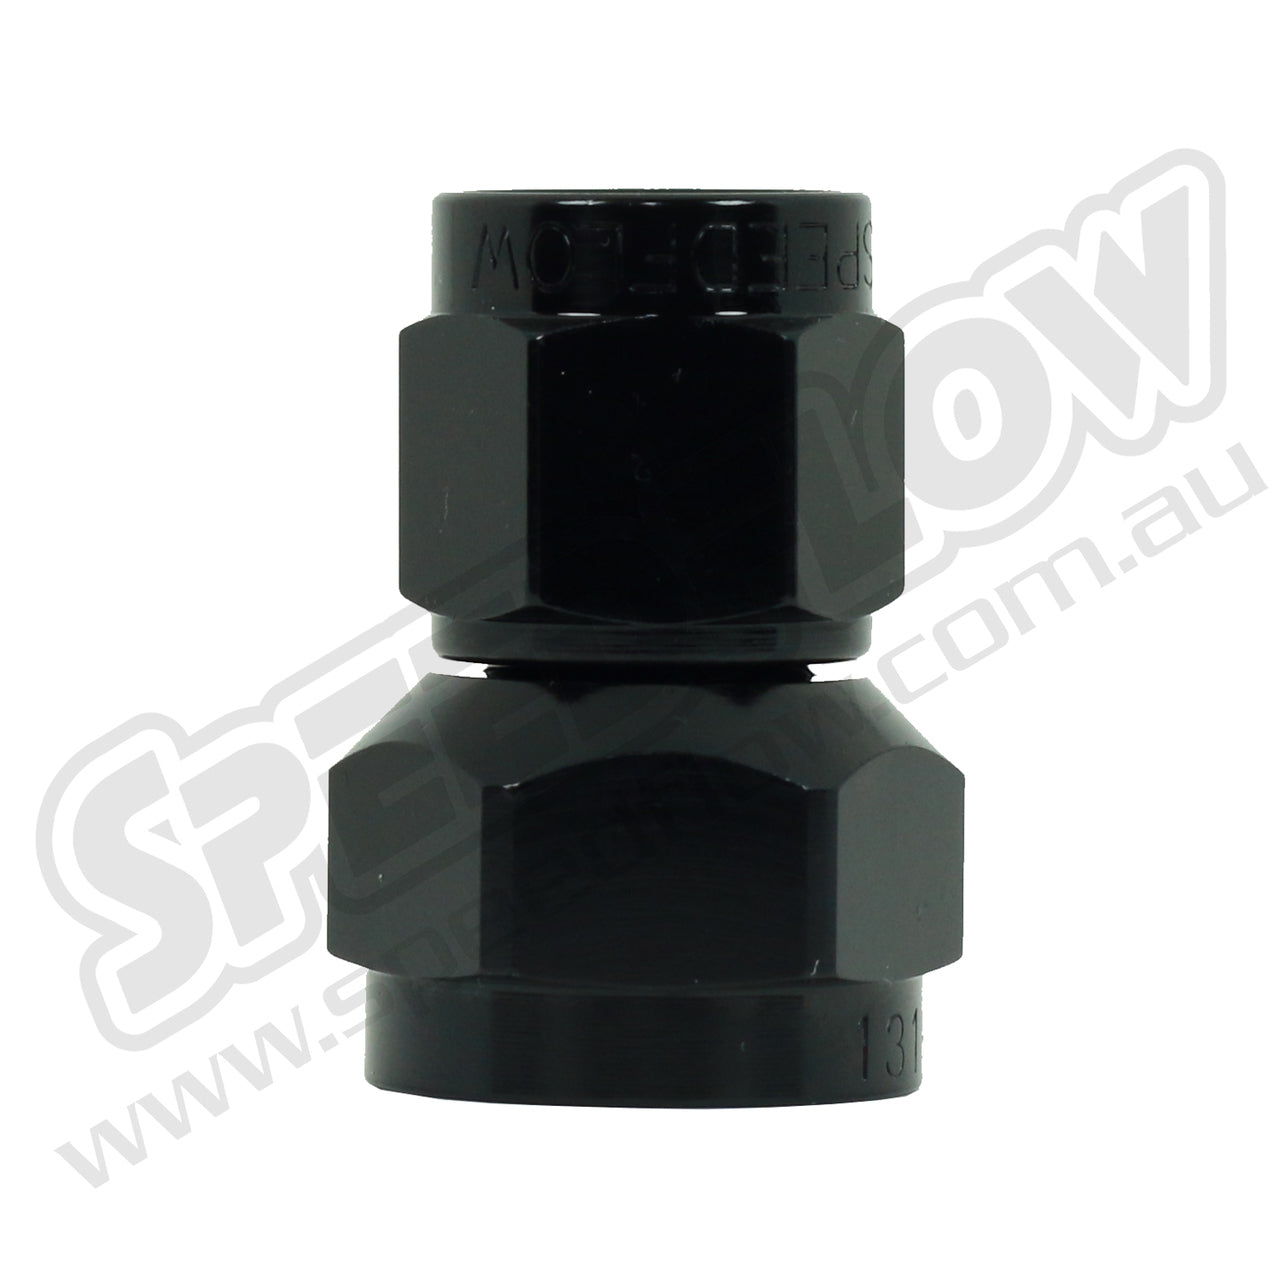 Stepped Female Union Swivel Adapter